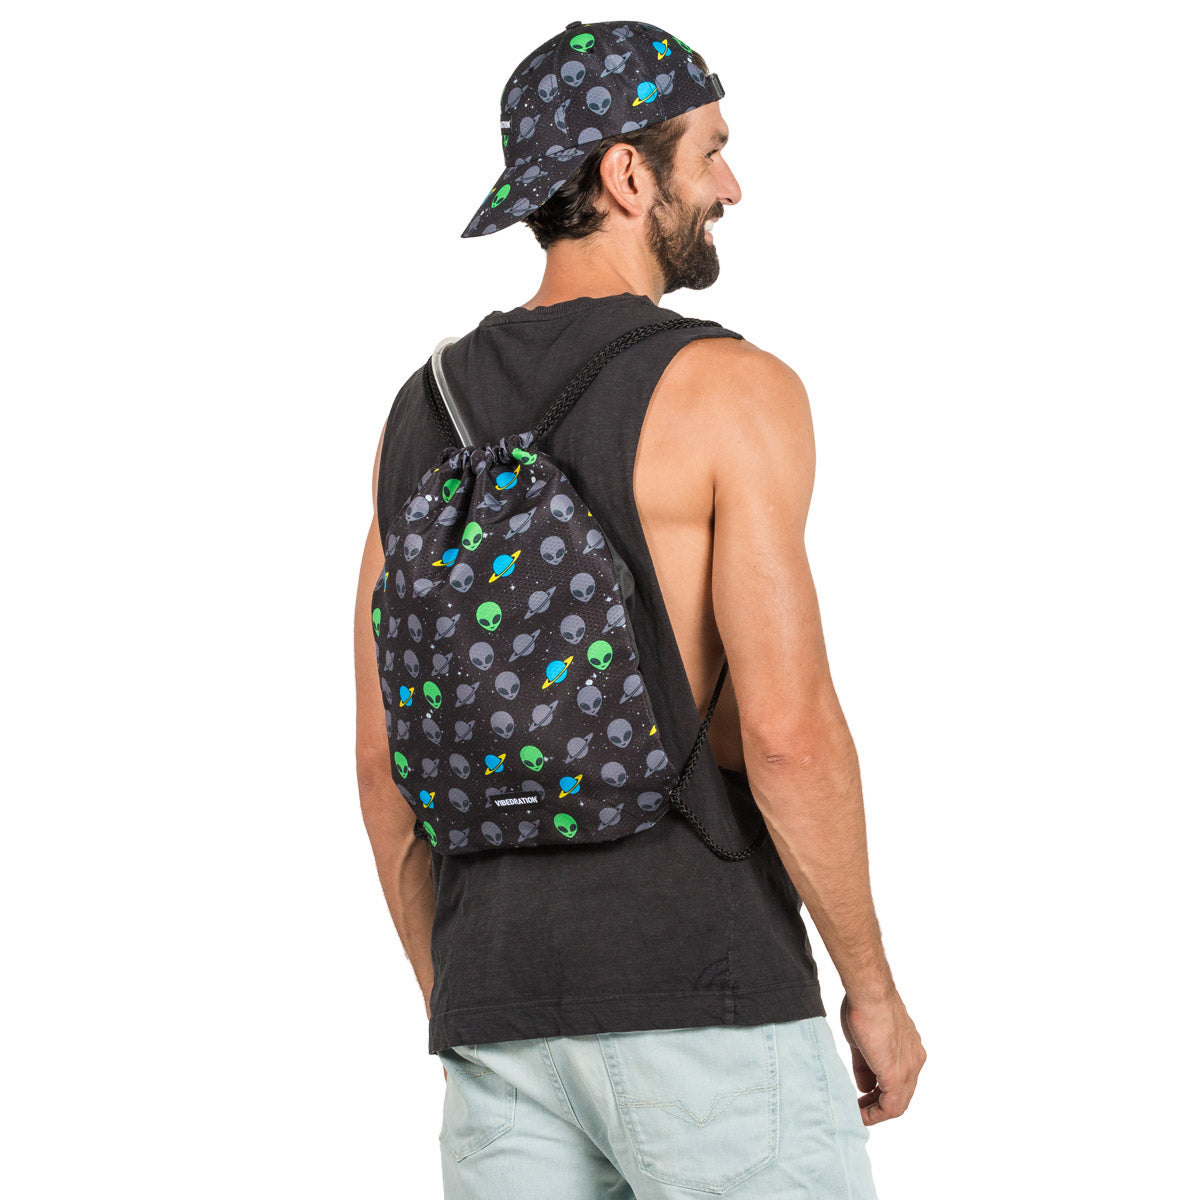 Black Alien 3 Liter Festival Backpack